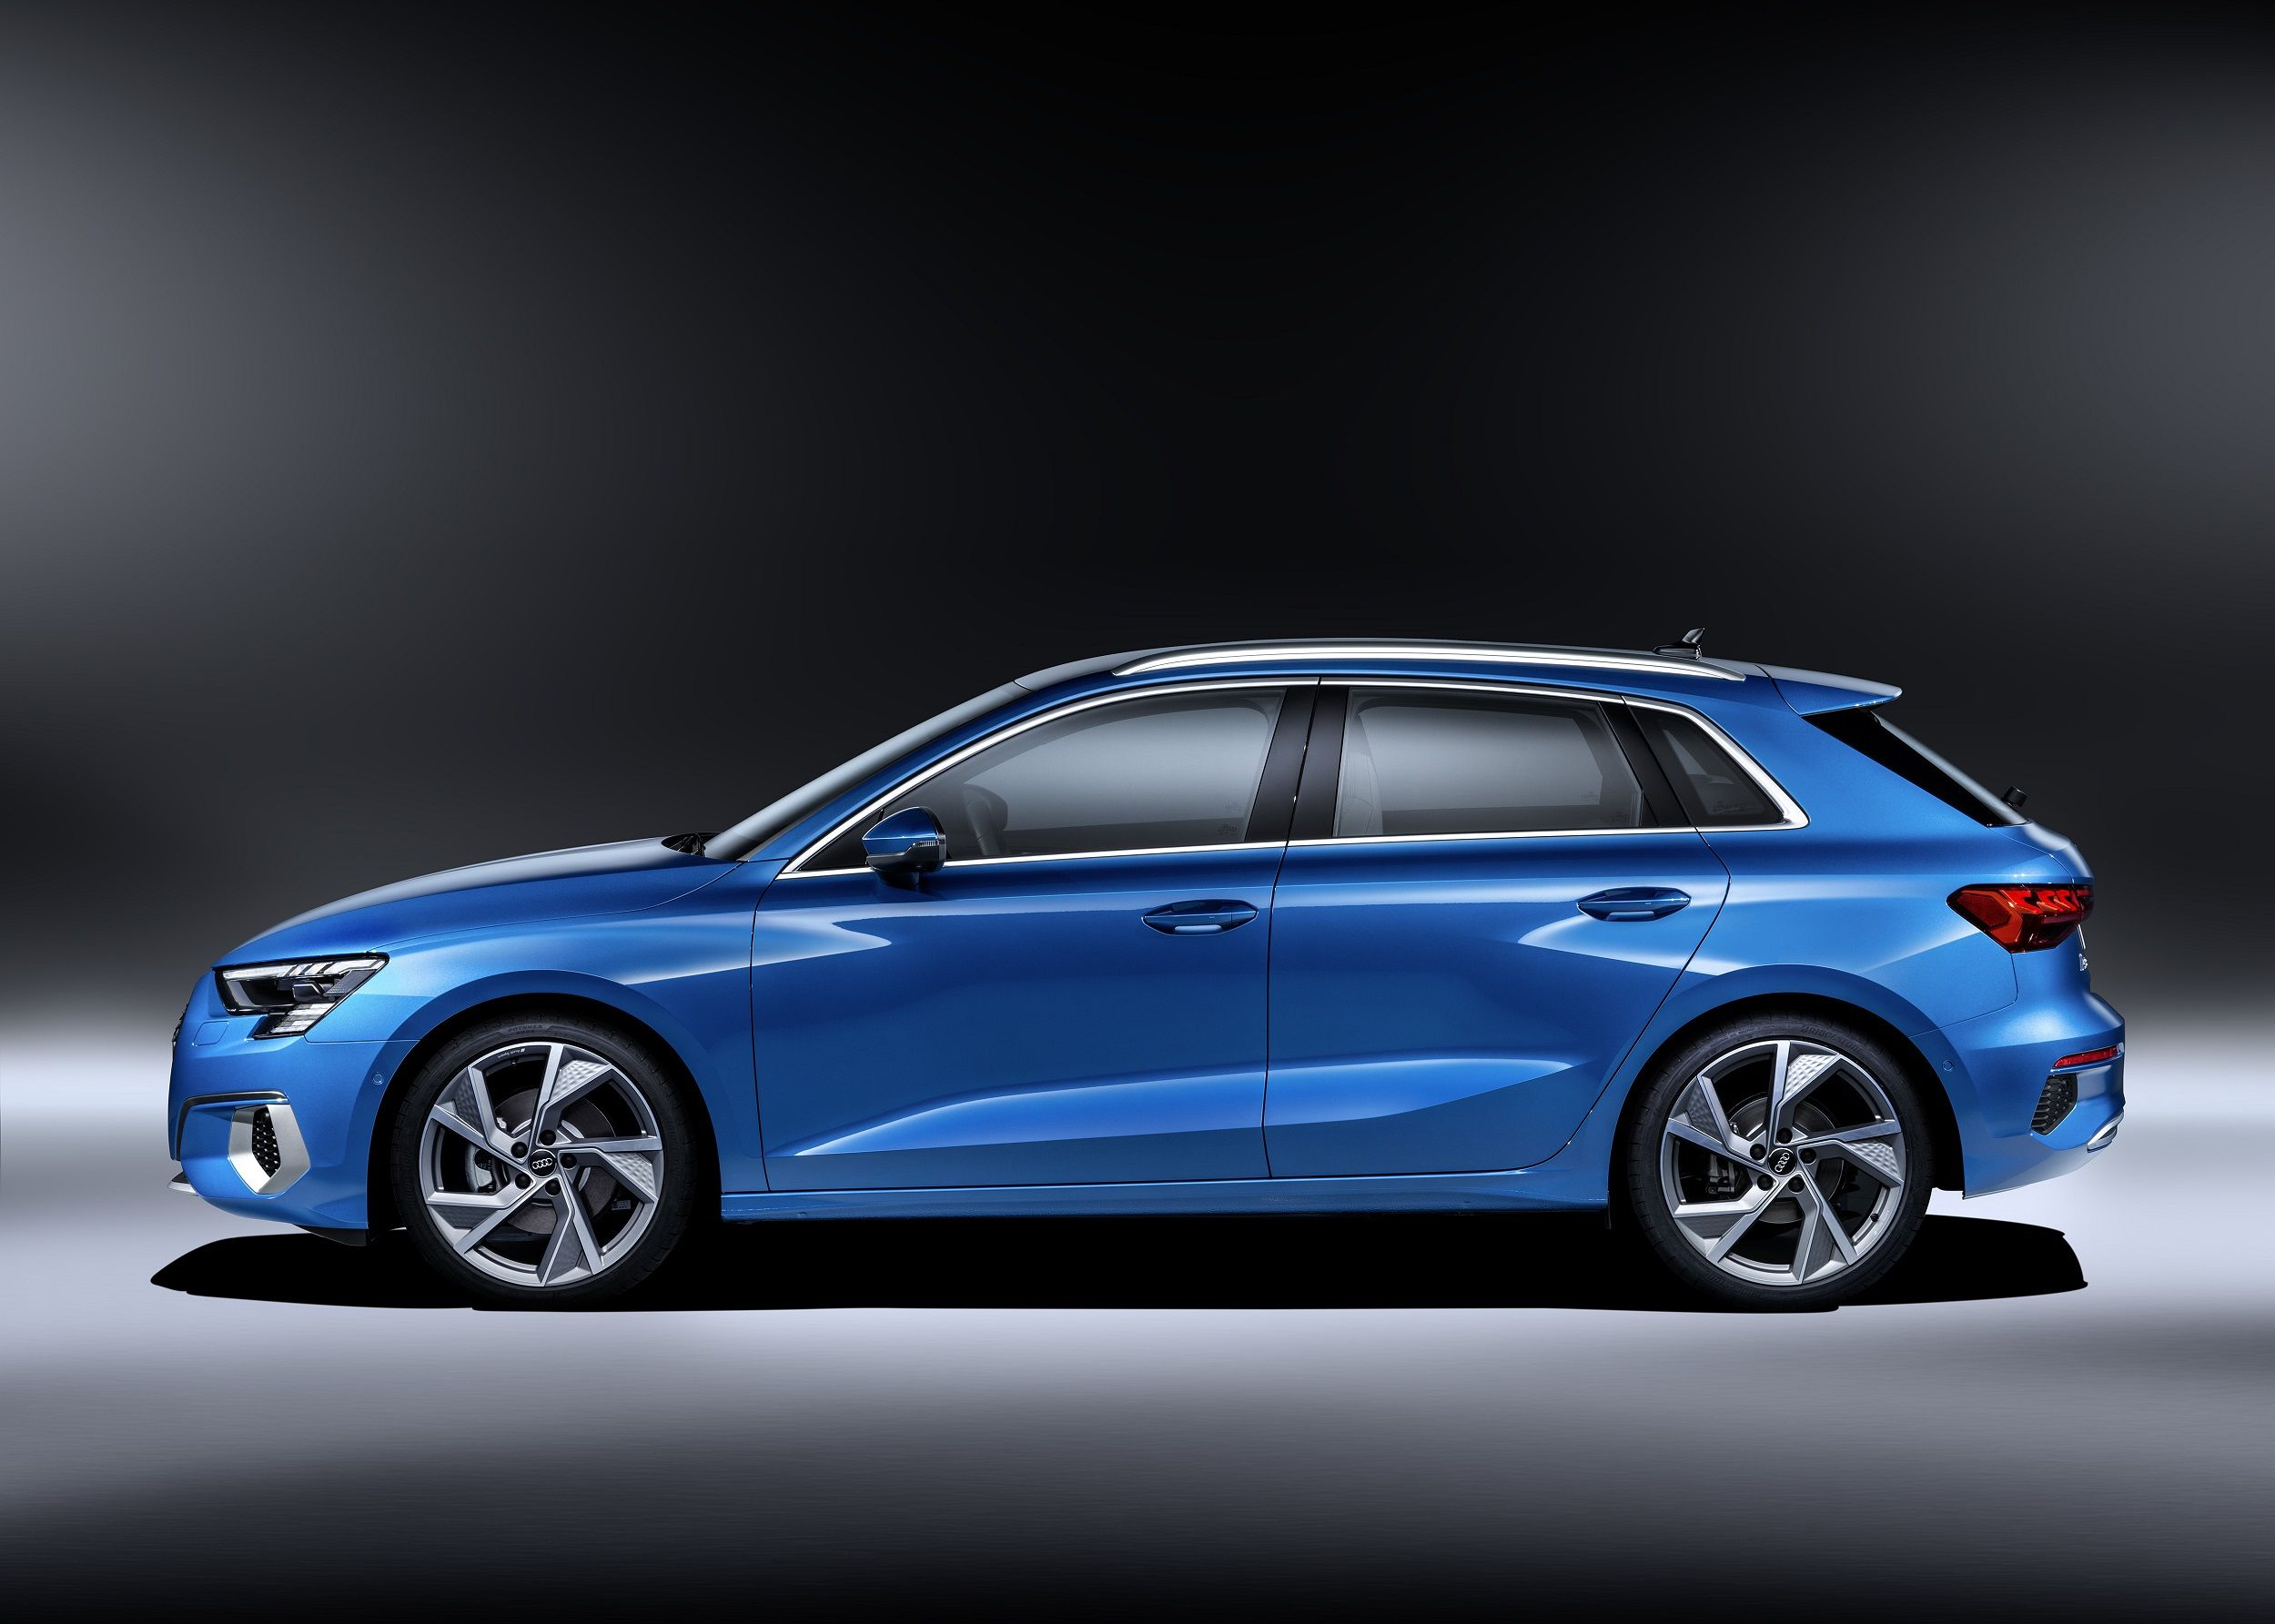 2020 Audi A3 Sportback Introduced With More Tech New Design In 2020 Audi A3 Sportback Audi Rs3 Audi A3